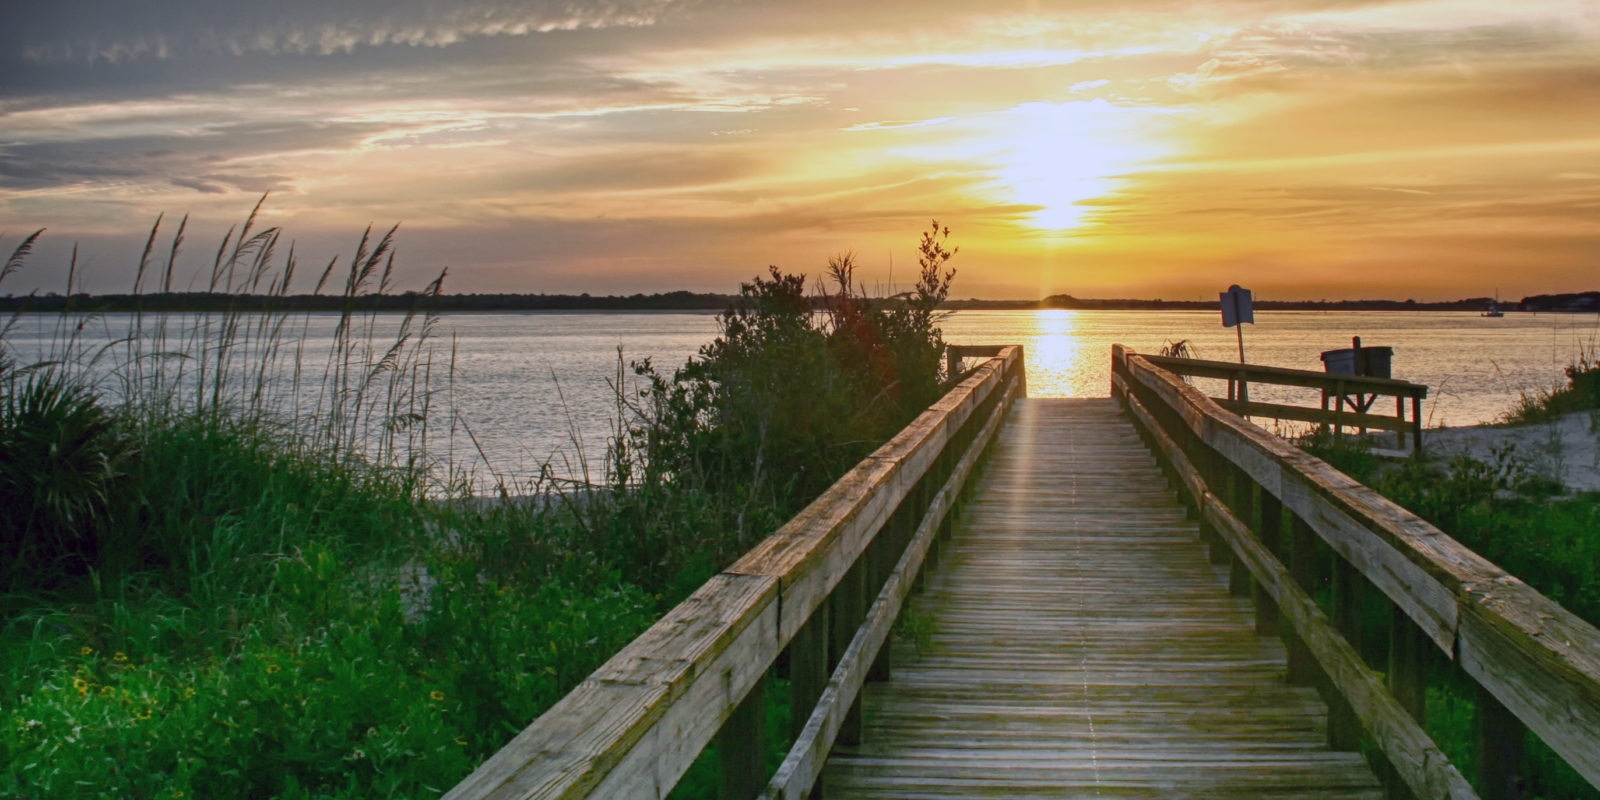 Orlando's closest beaches